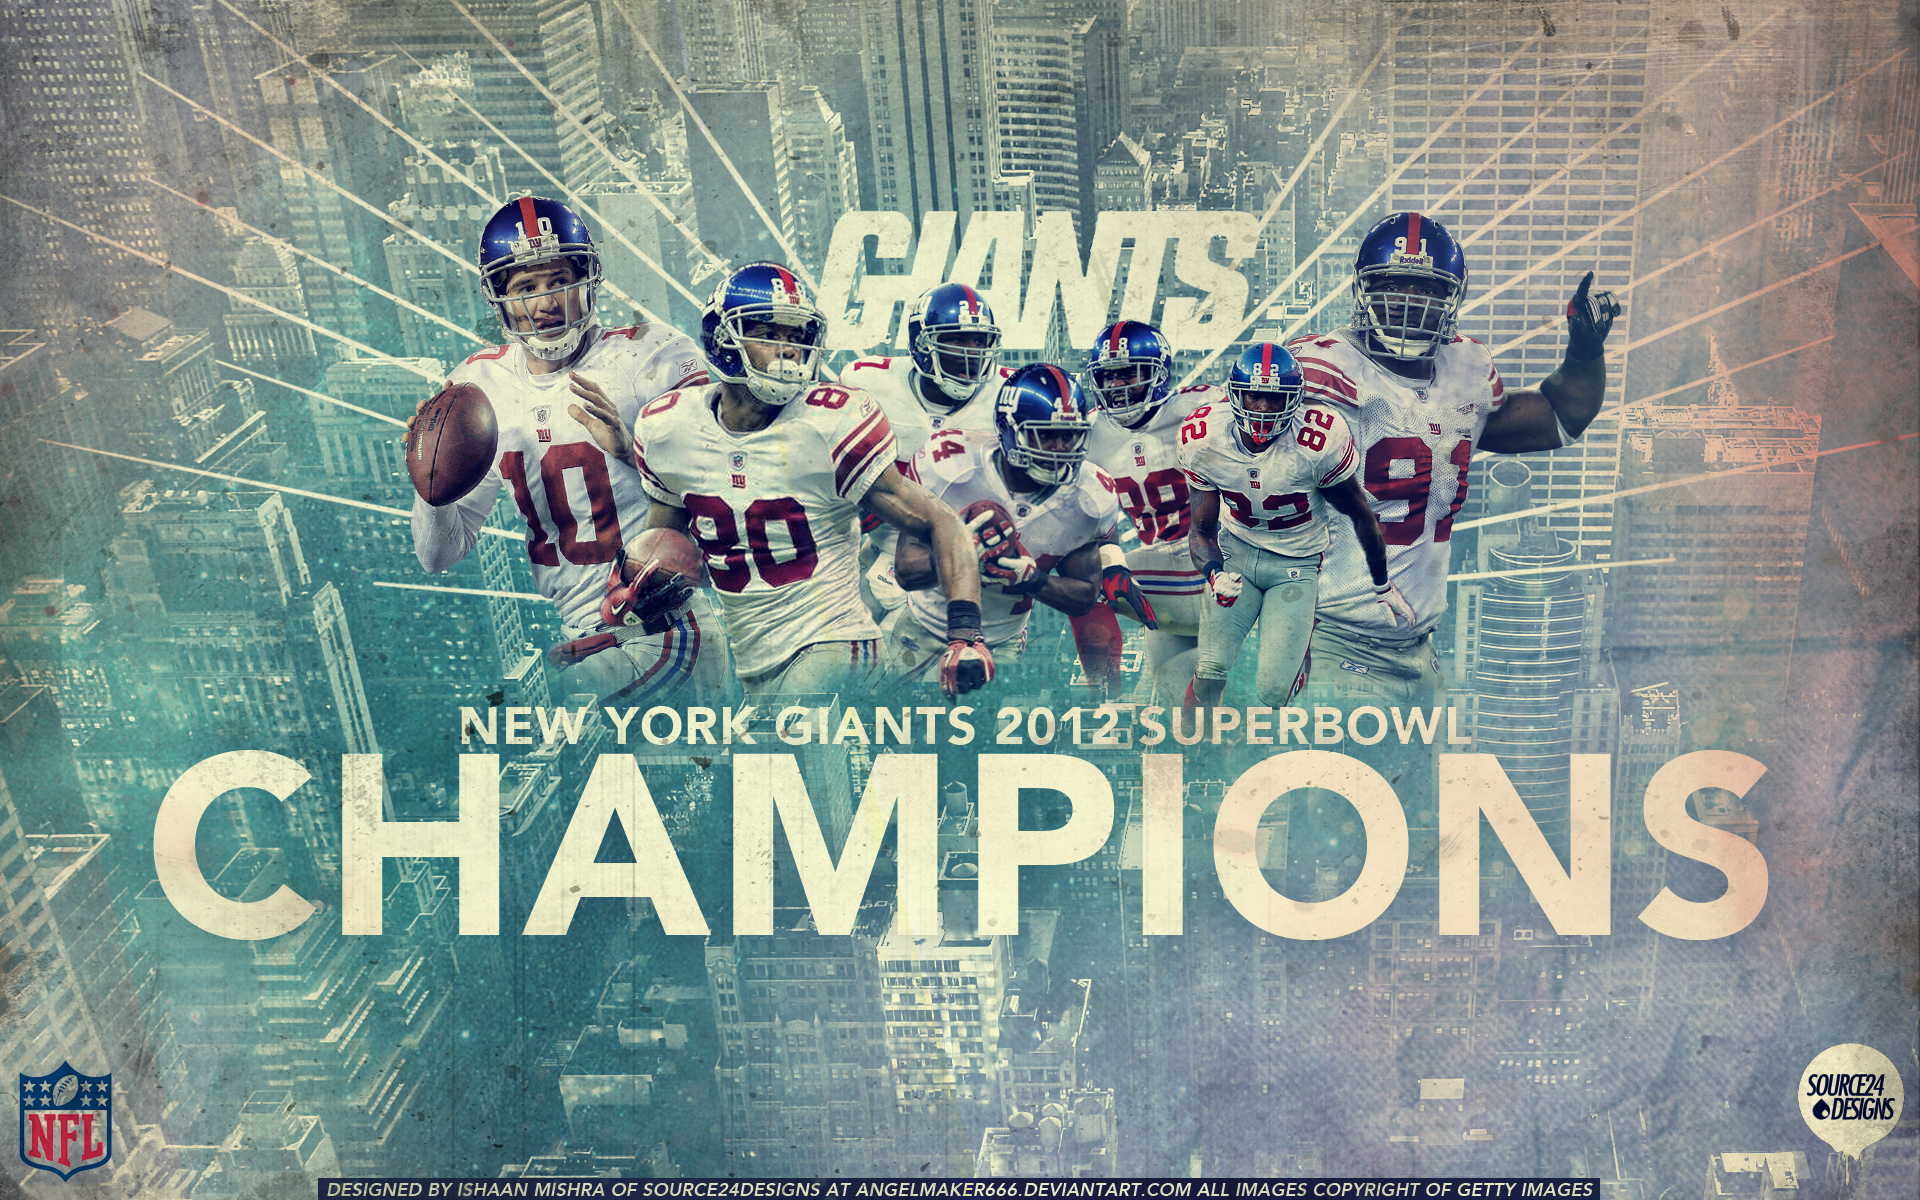 New york giants super bowl chions by angelmaker666 1920 x